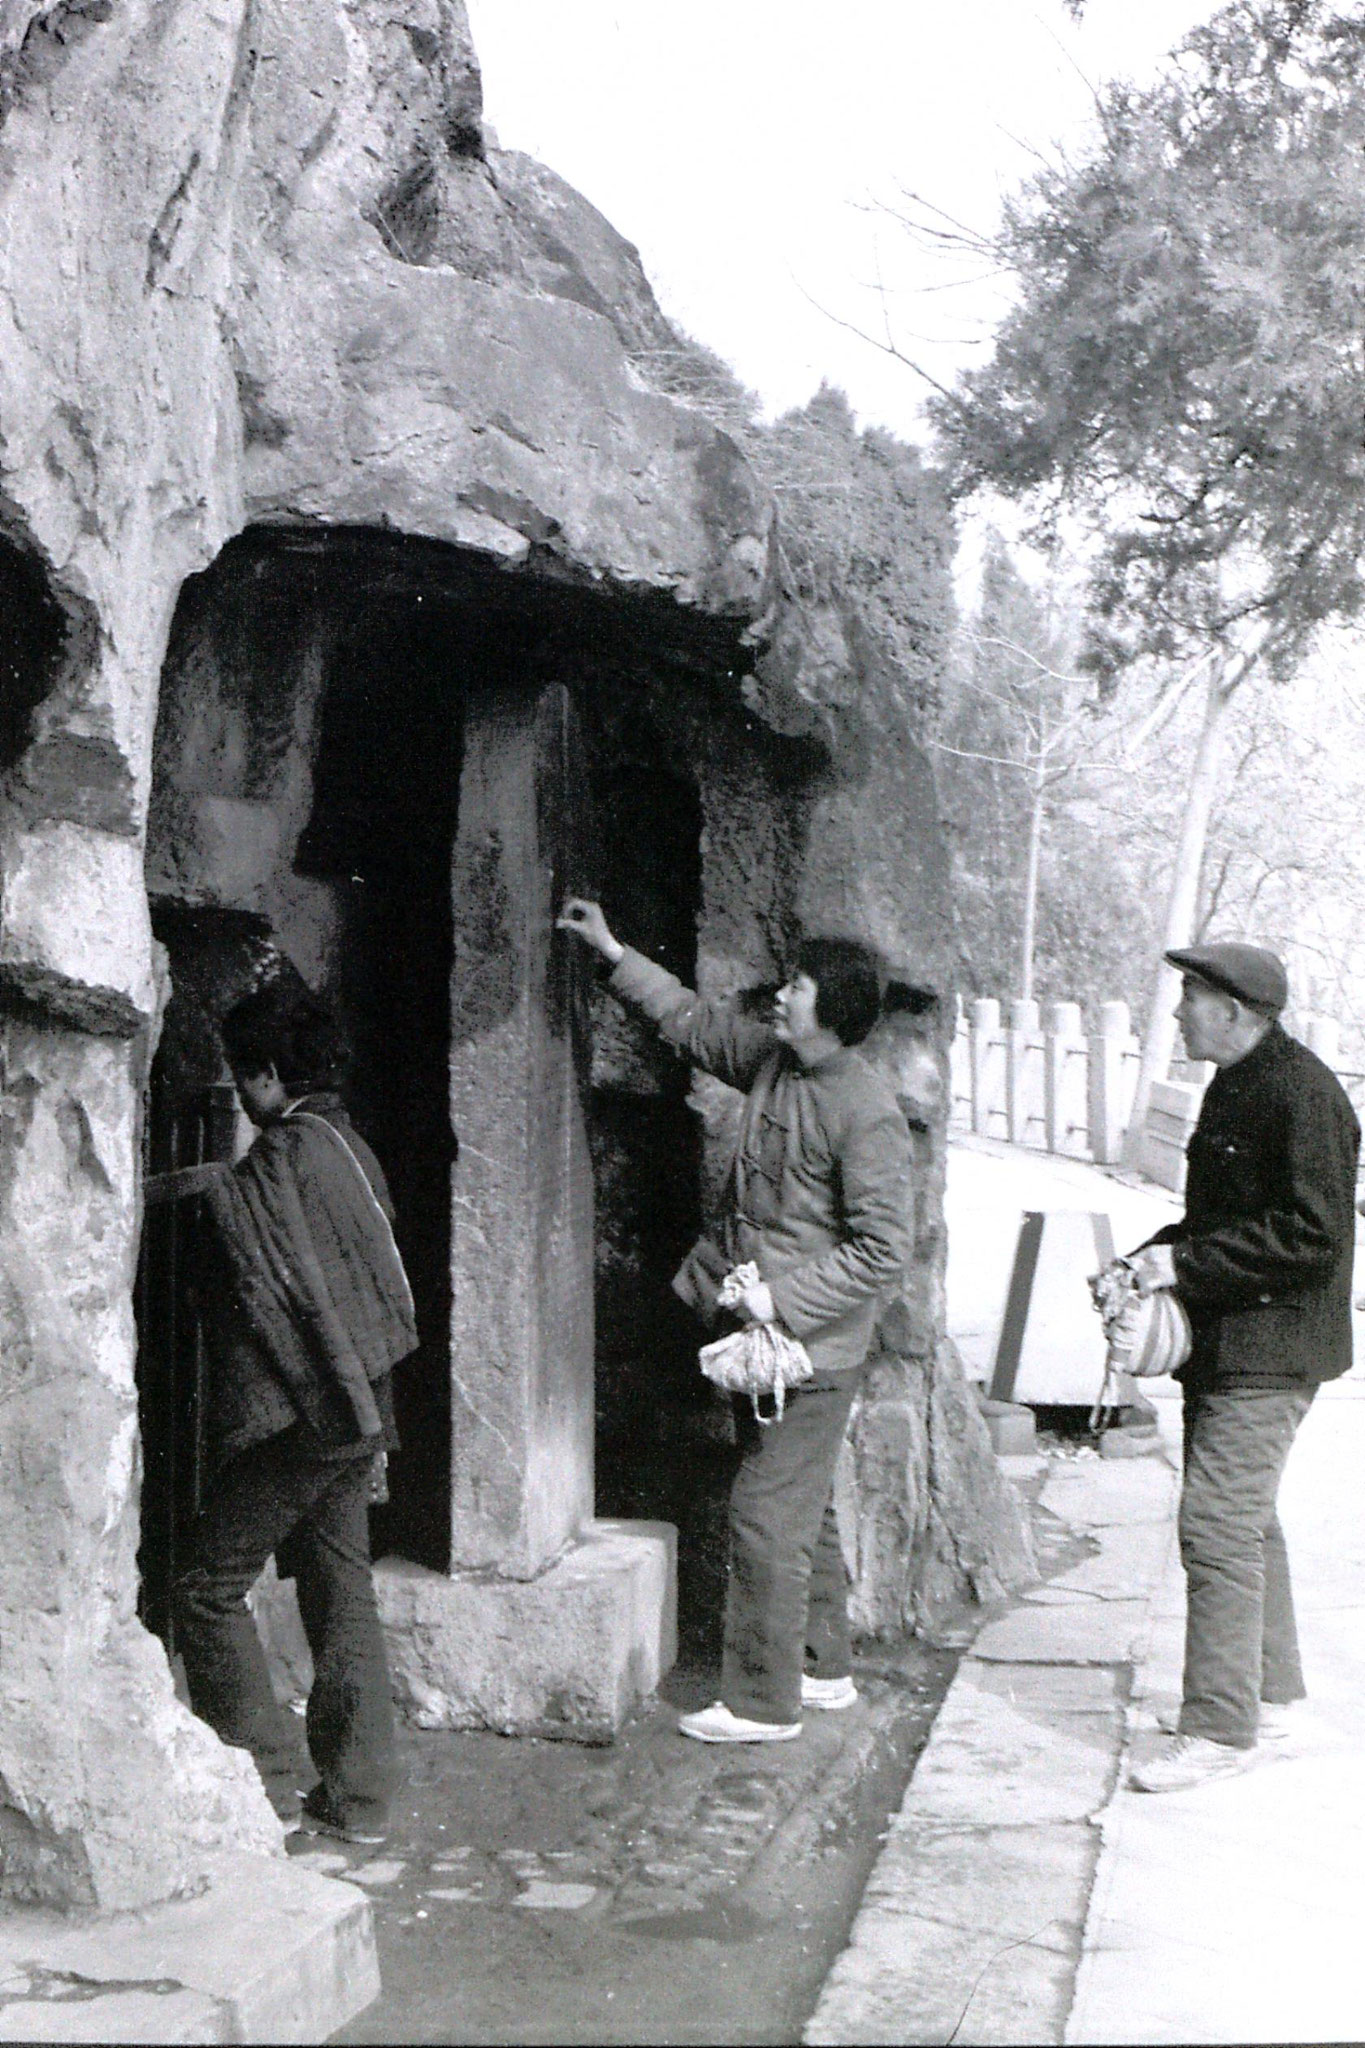 28/2/1989: 6: Luoyang Longmen Caves, putting coin in stele